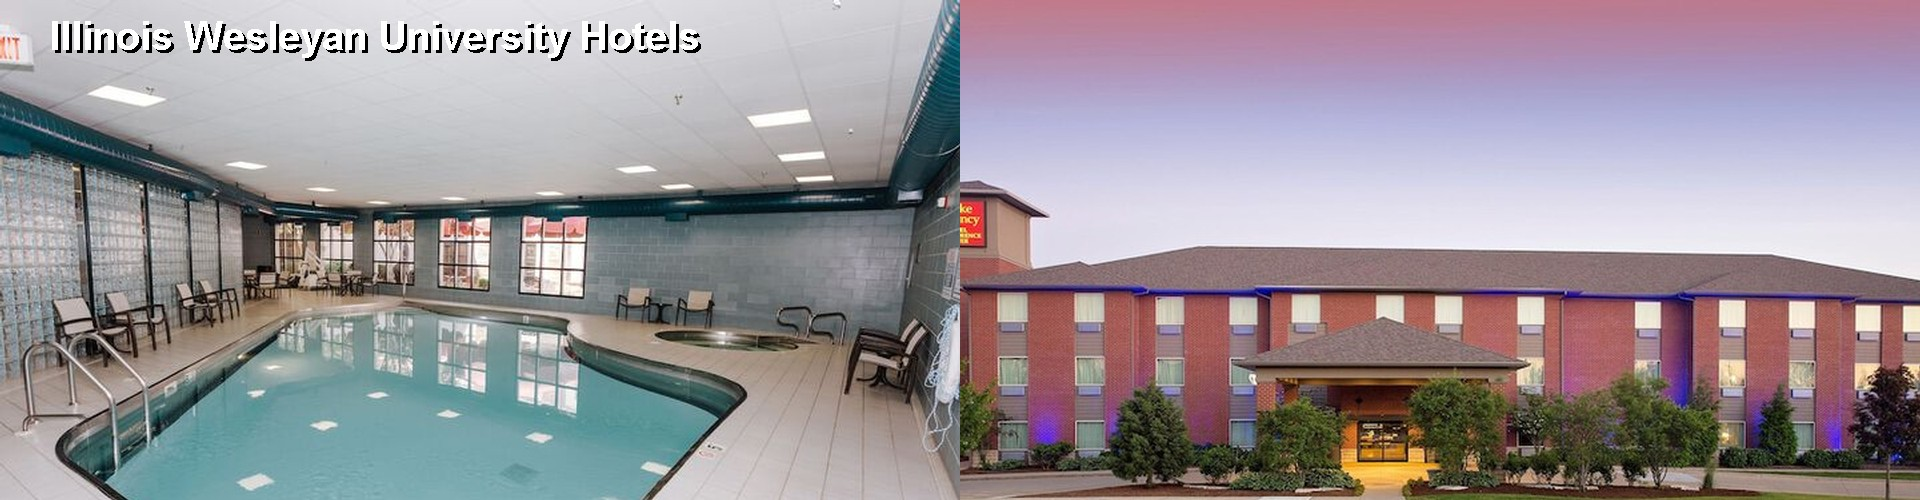 $39+ Hotels Near Illinois Wesleyan University in Bloomington IL